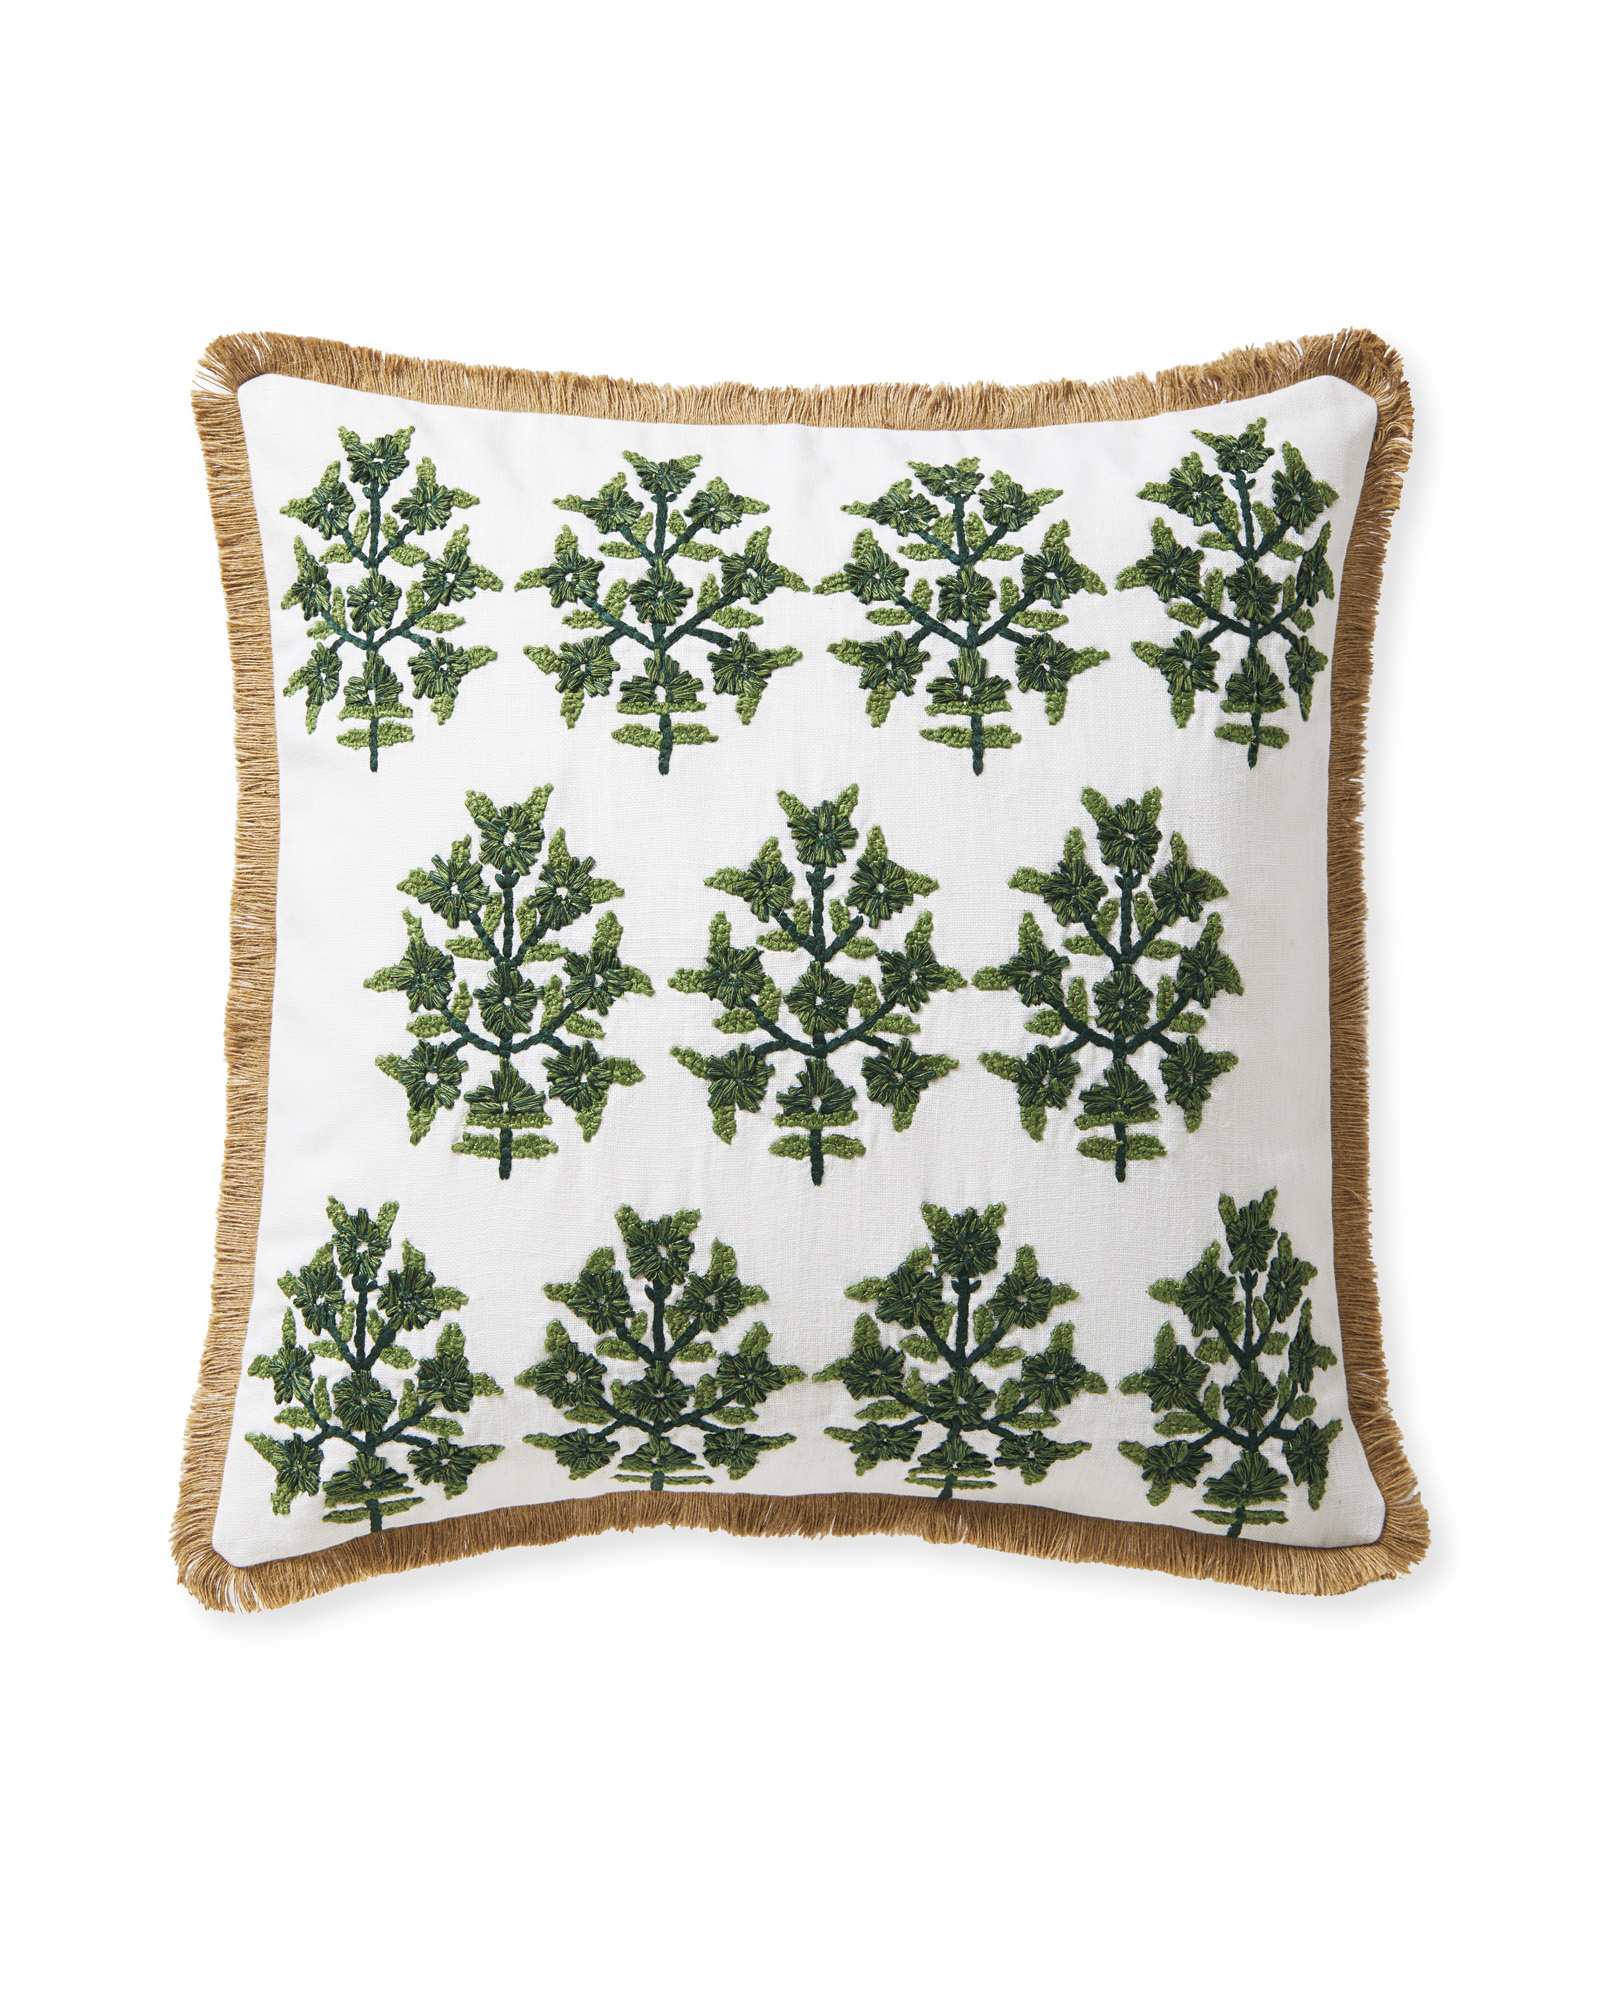 Morningside Pillow Cover, Evergreen/Moss